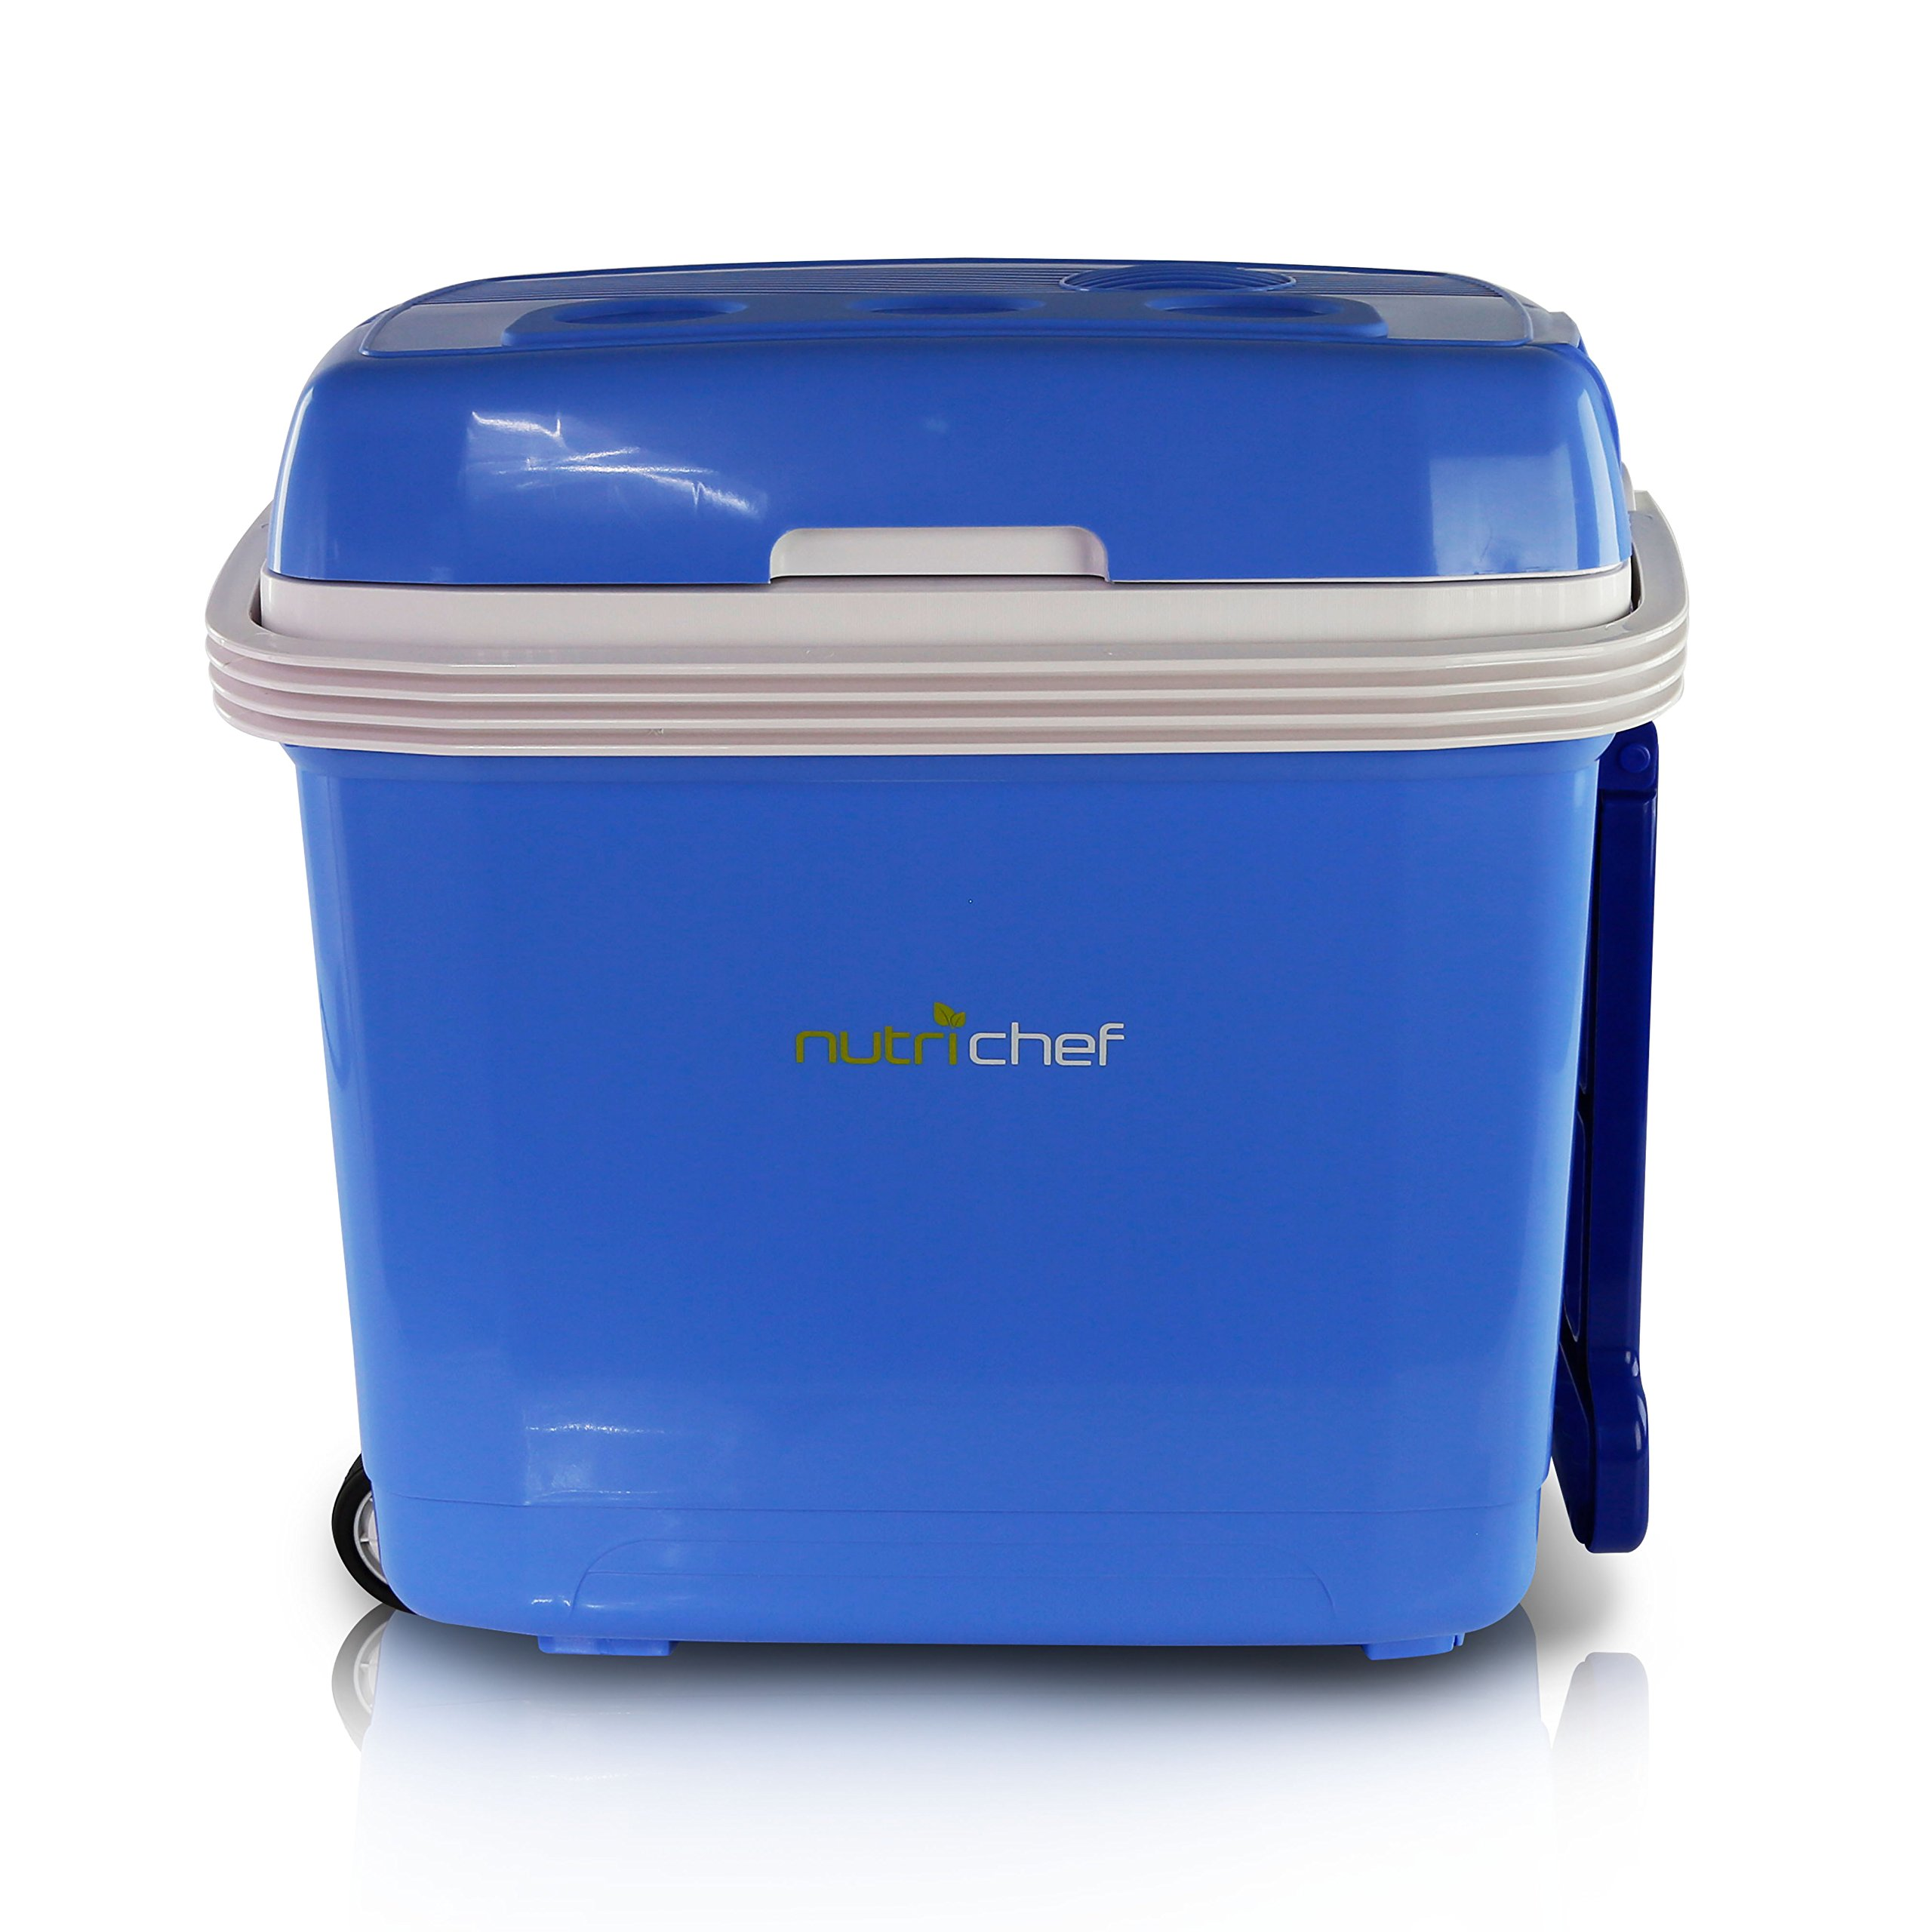 NutriChef Portable Electric Cooler Fridge/Food Warmer, 35 Can - 32L Capacity | Personal Thermoelectric Dual Cooling Warming Digital Plug In Refrigerator for Car, Travel, Beach, Office